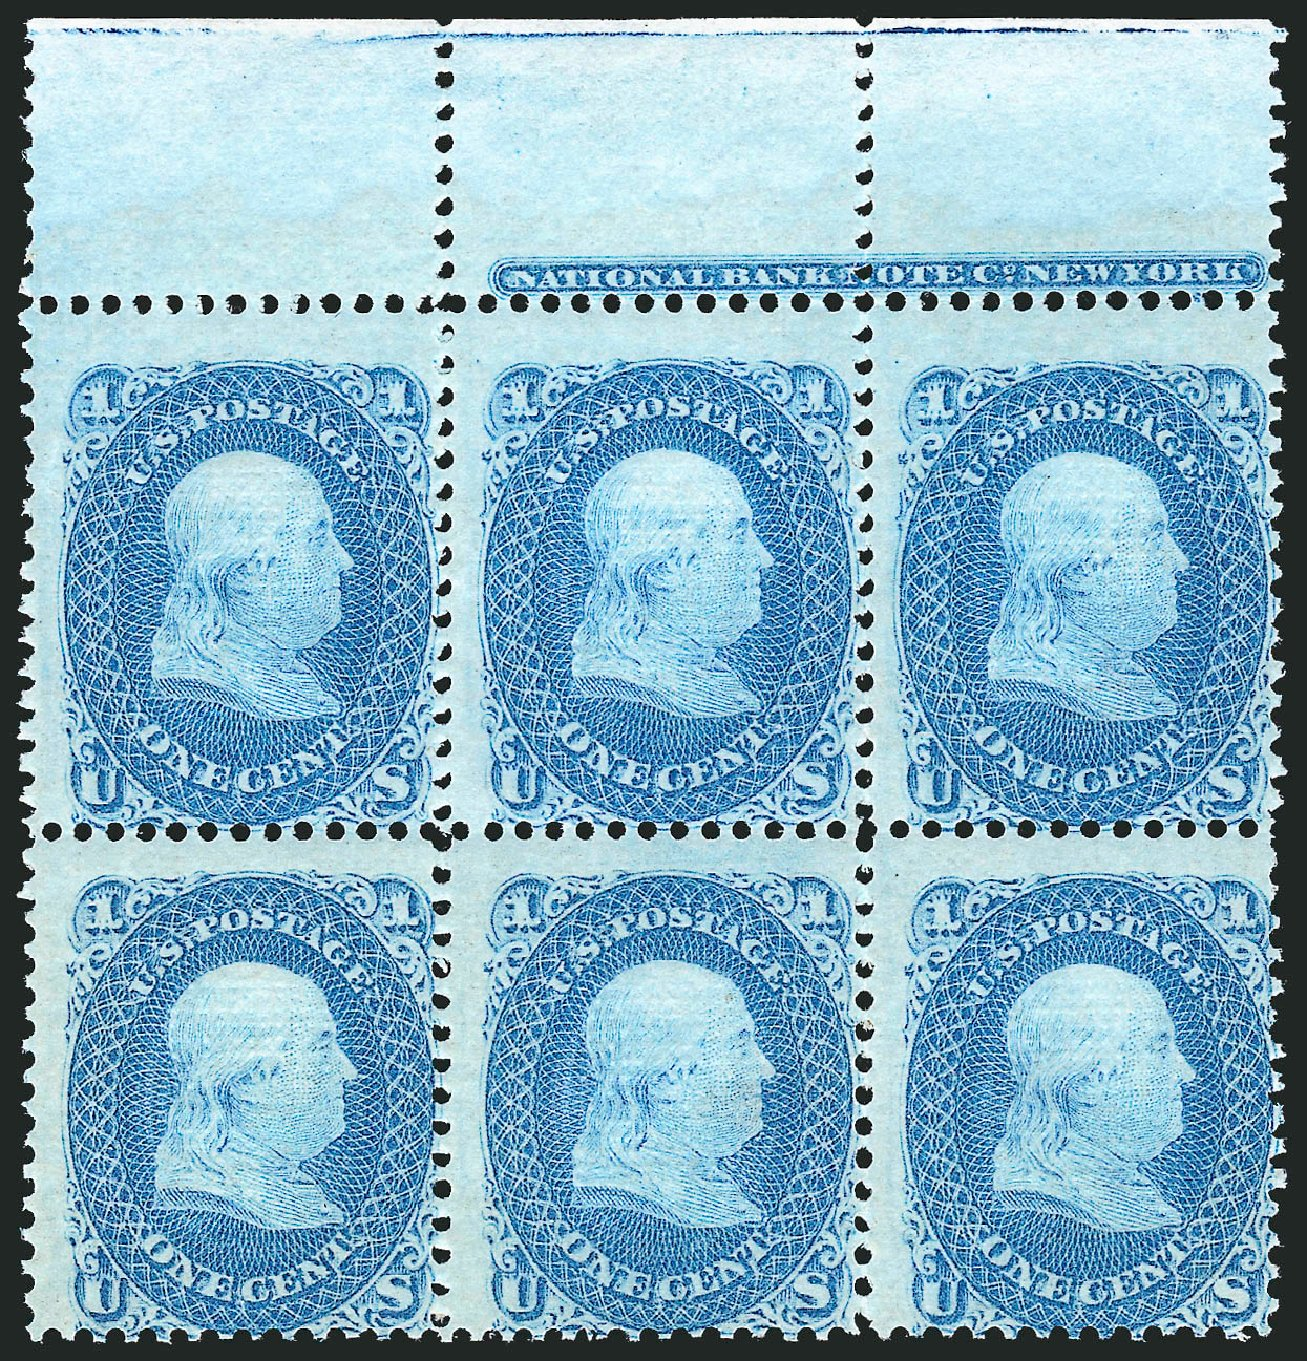 Value of US Stamp Scott Catalog 86 - 1867 1c Franklin Grill. Robert Siegel Auction Galleries, Nov 2014, Sale 1084, Lot 3255